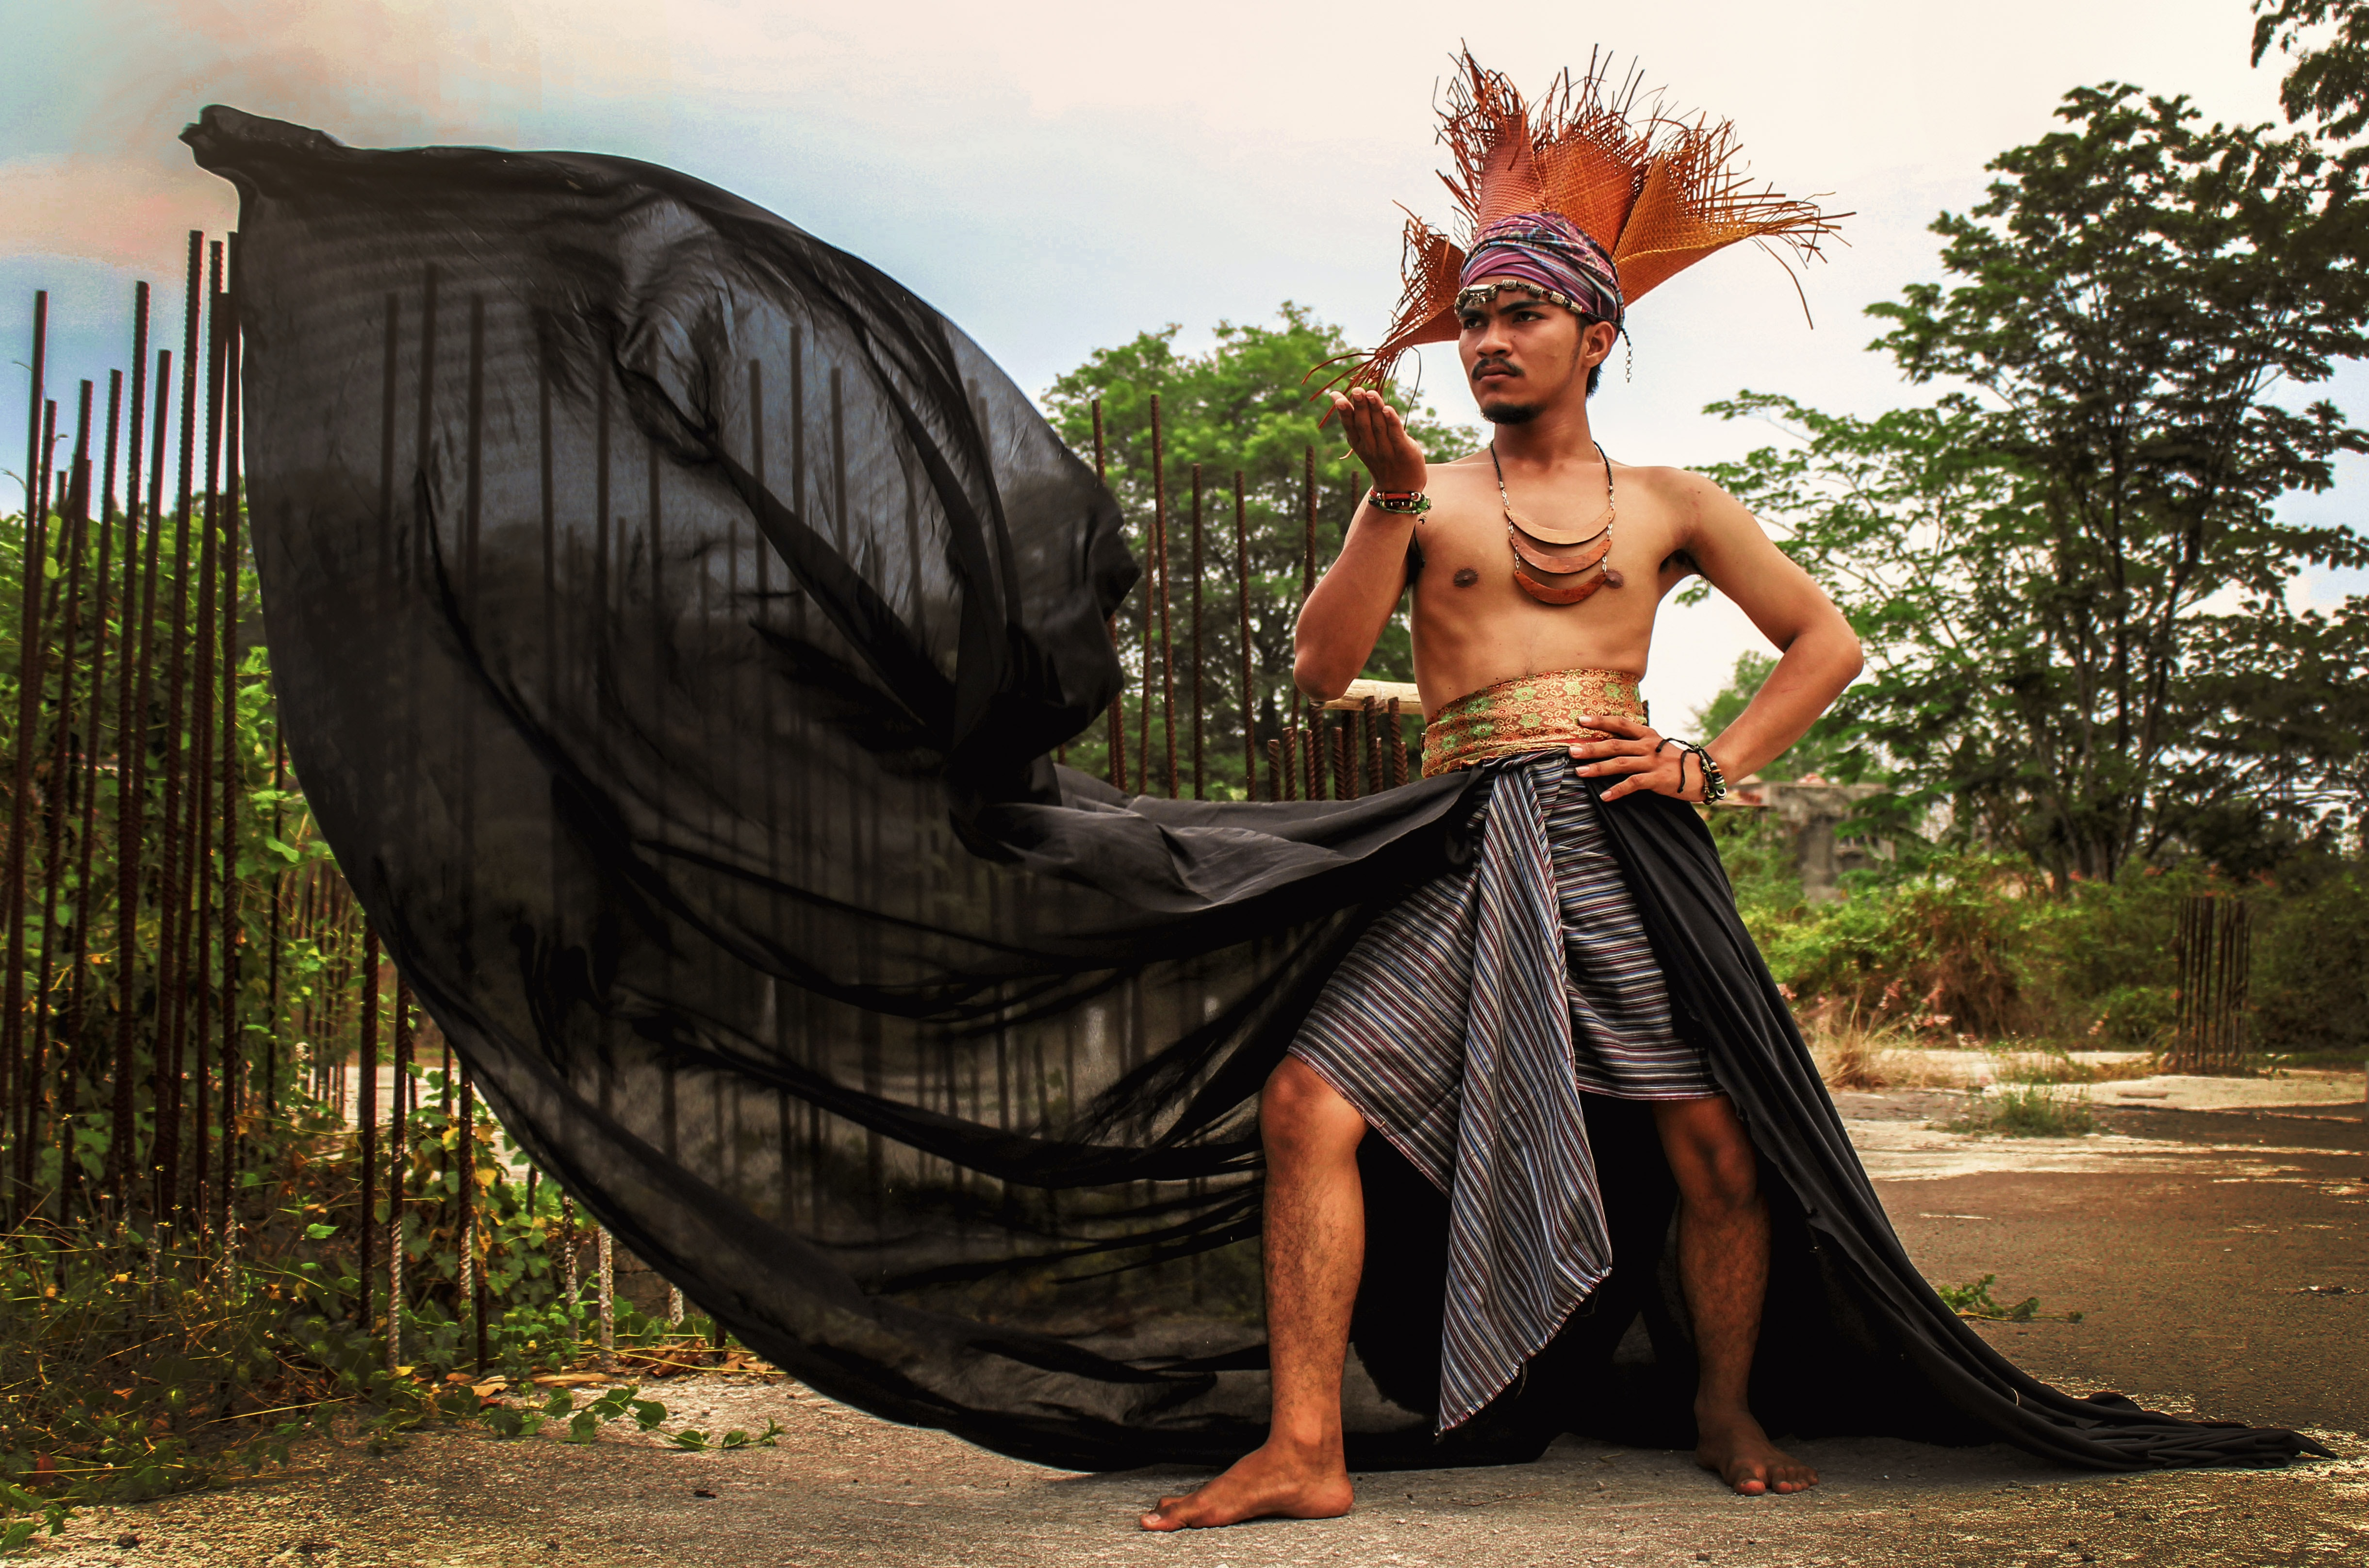 A dancer wearing a headdress and billowing sarong poses outdoors